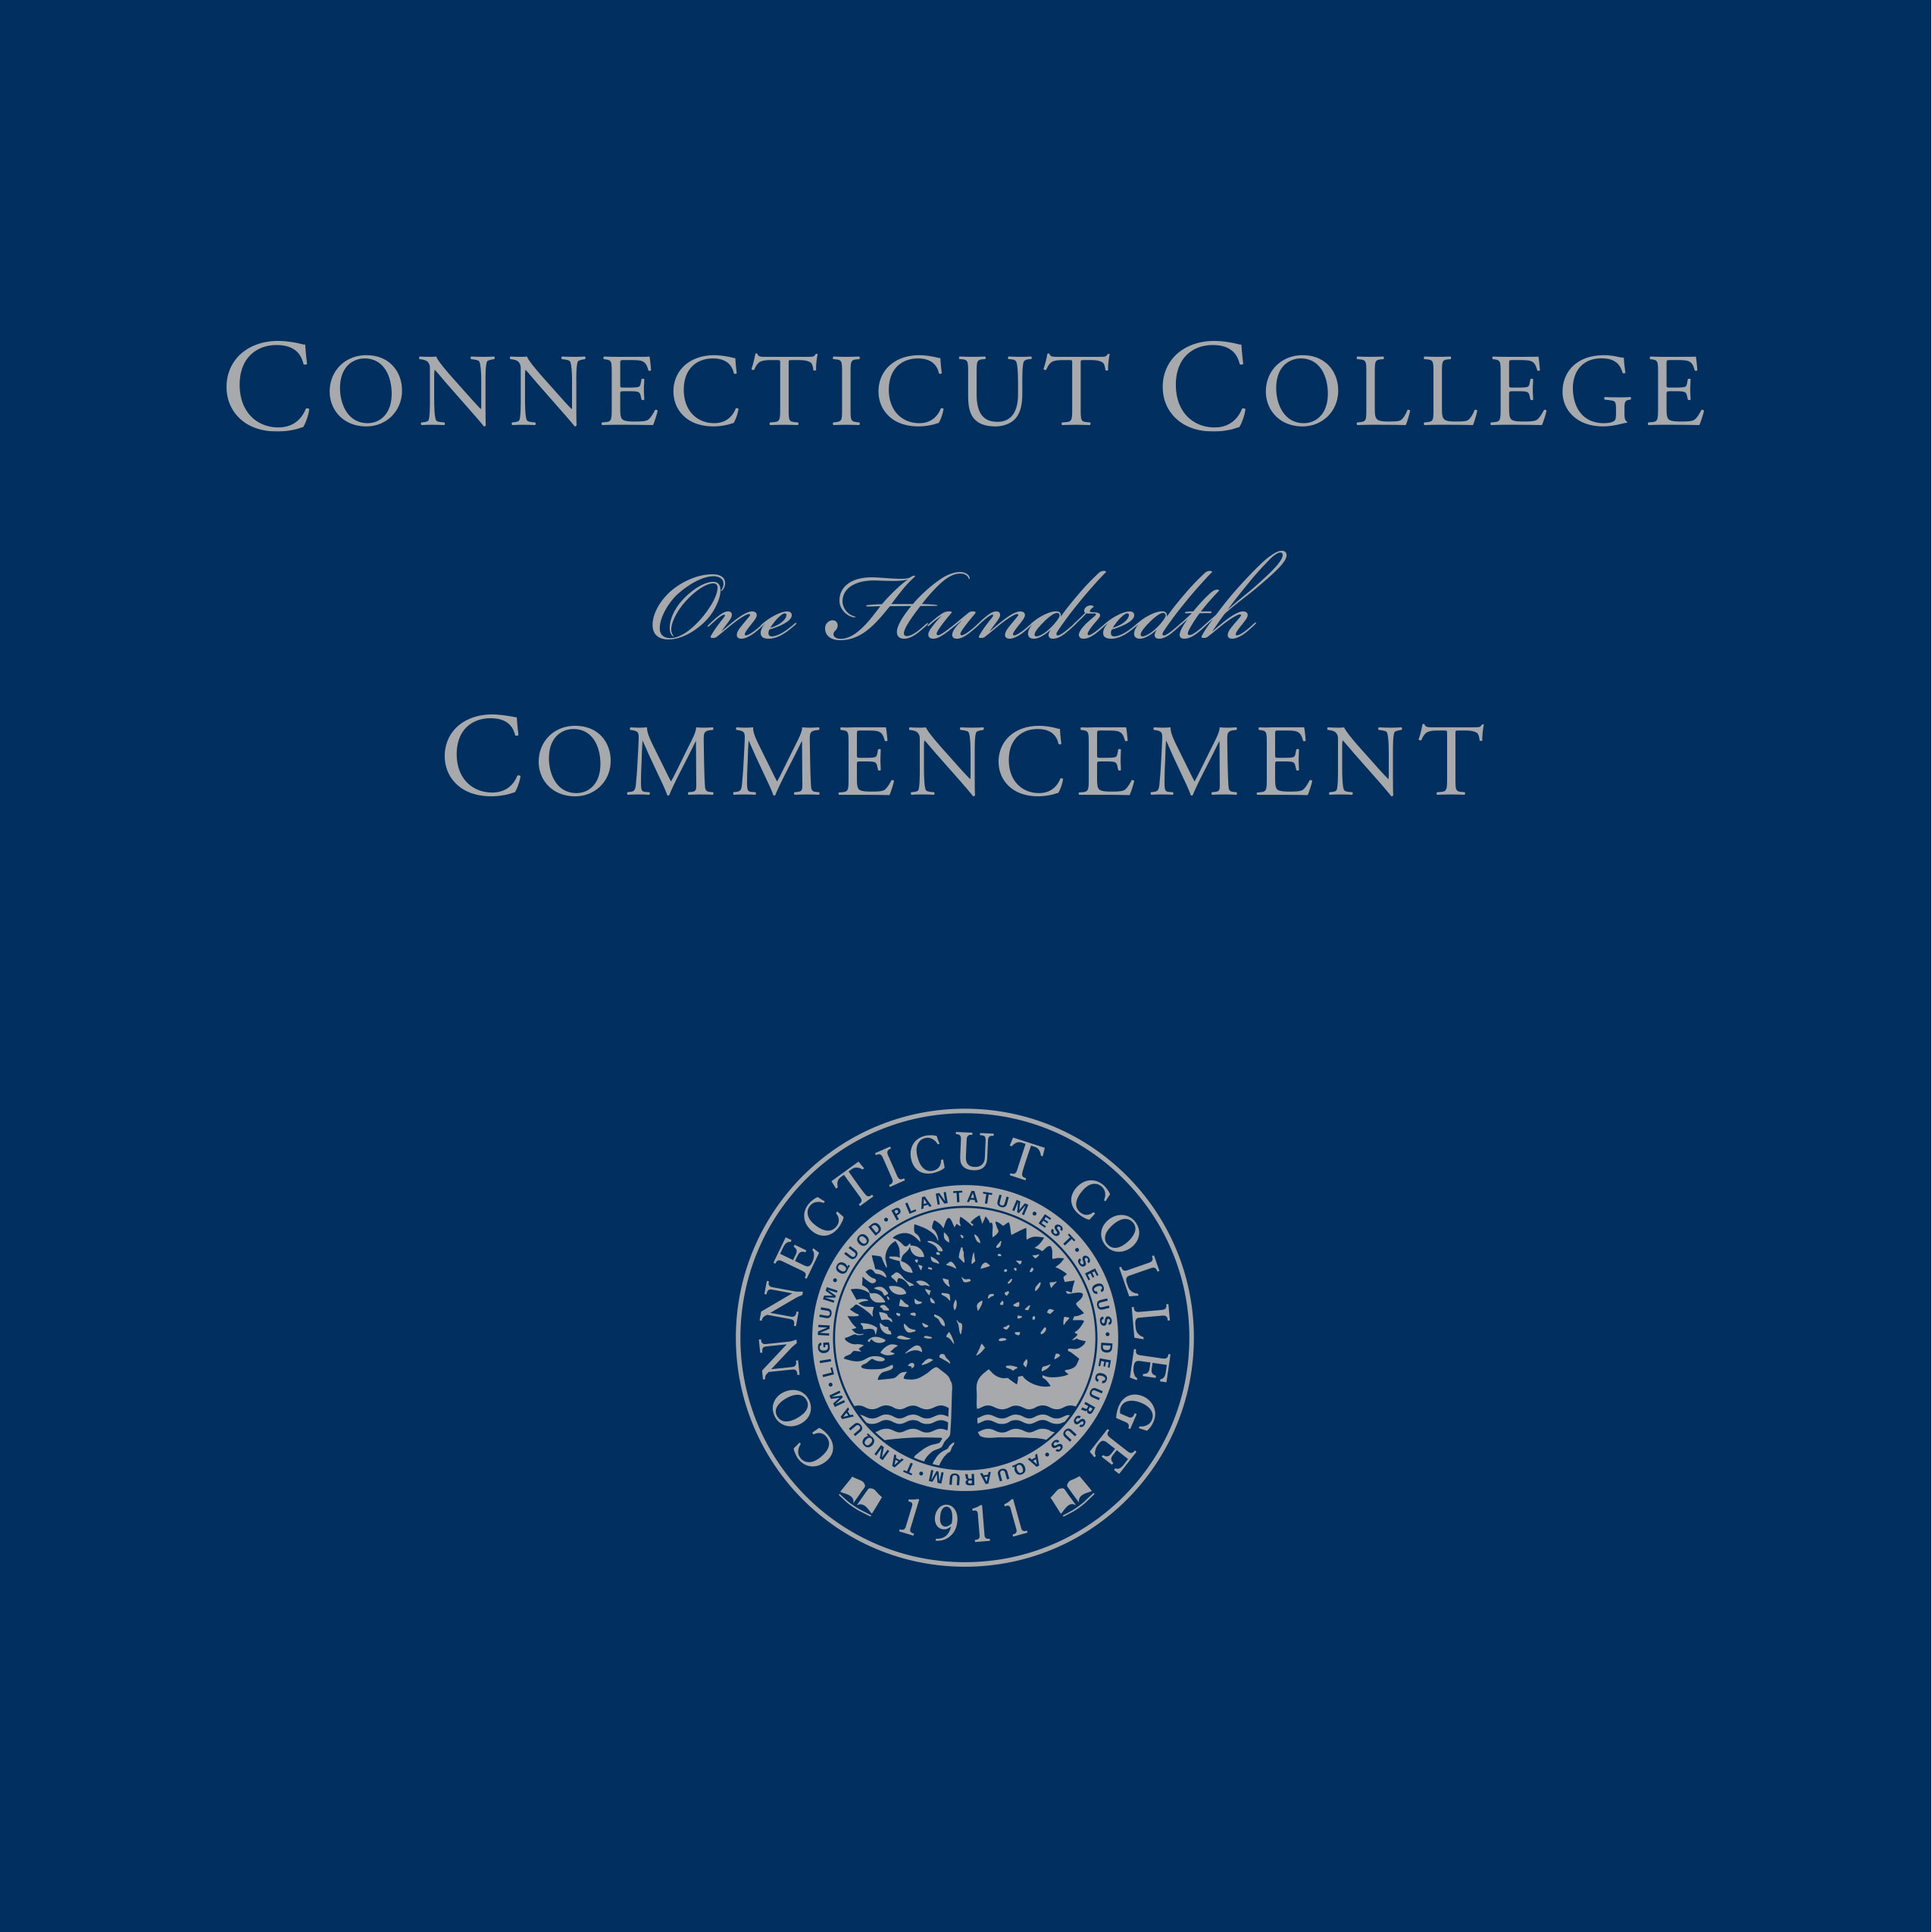 Connecticut College One Hundredth Commencement Program Cover